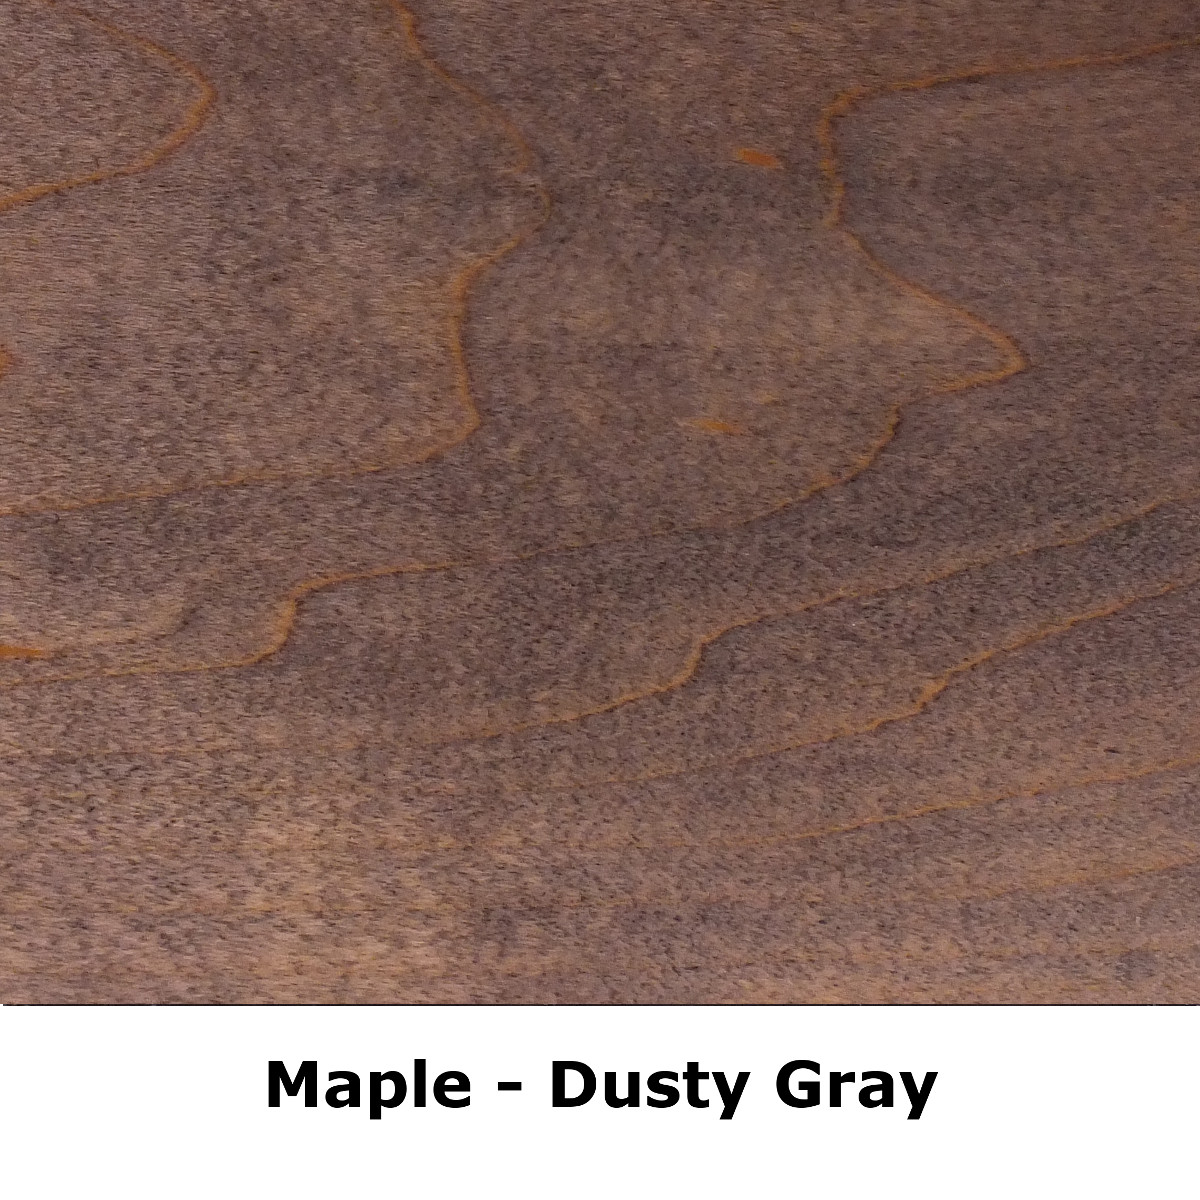 sq Maple dusty grey.jpeg